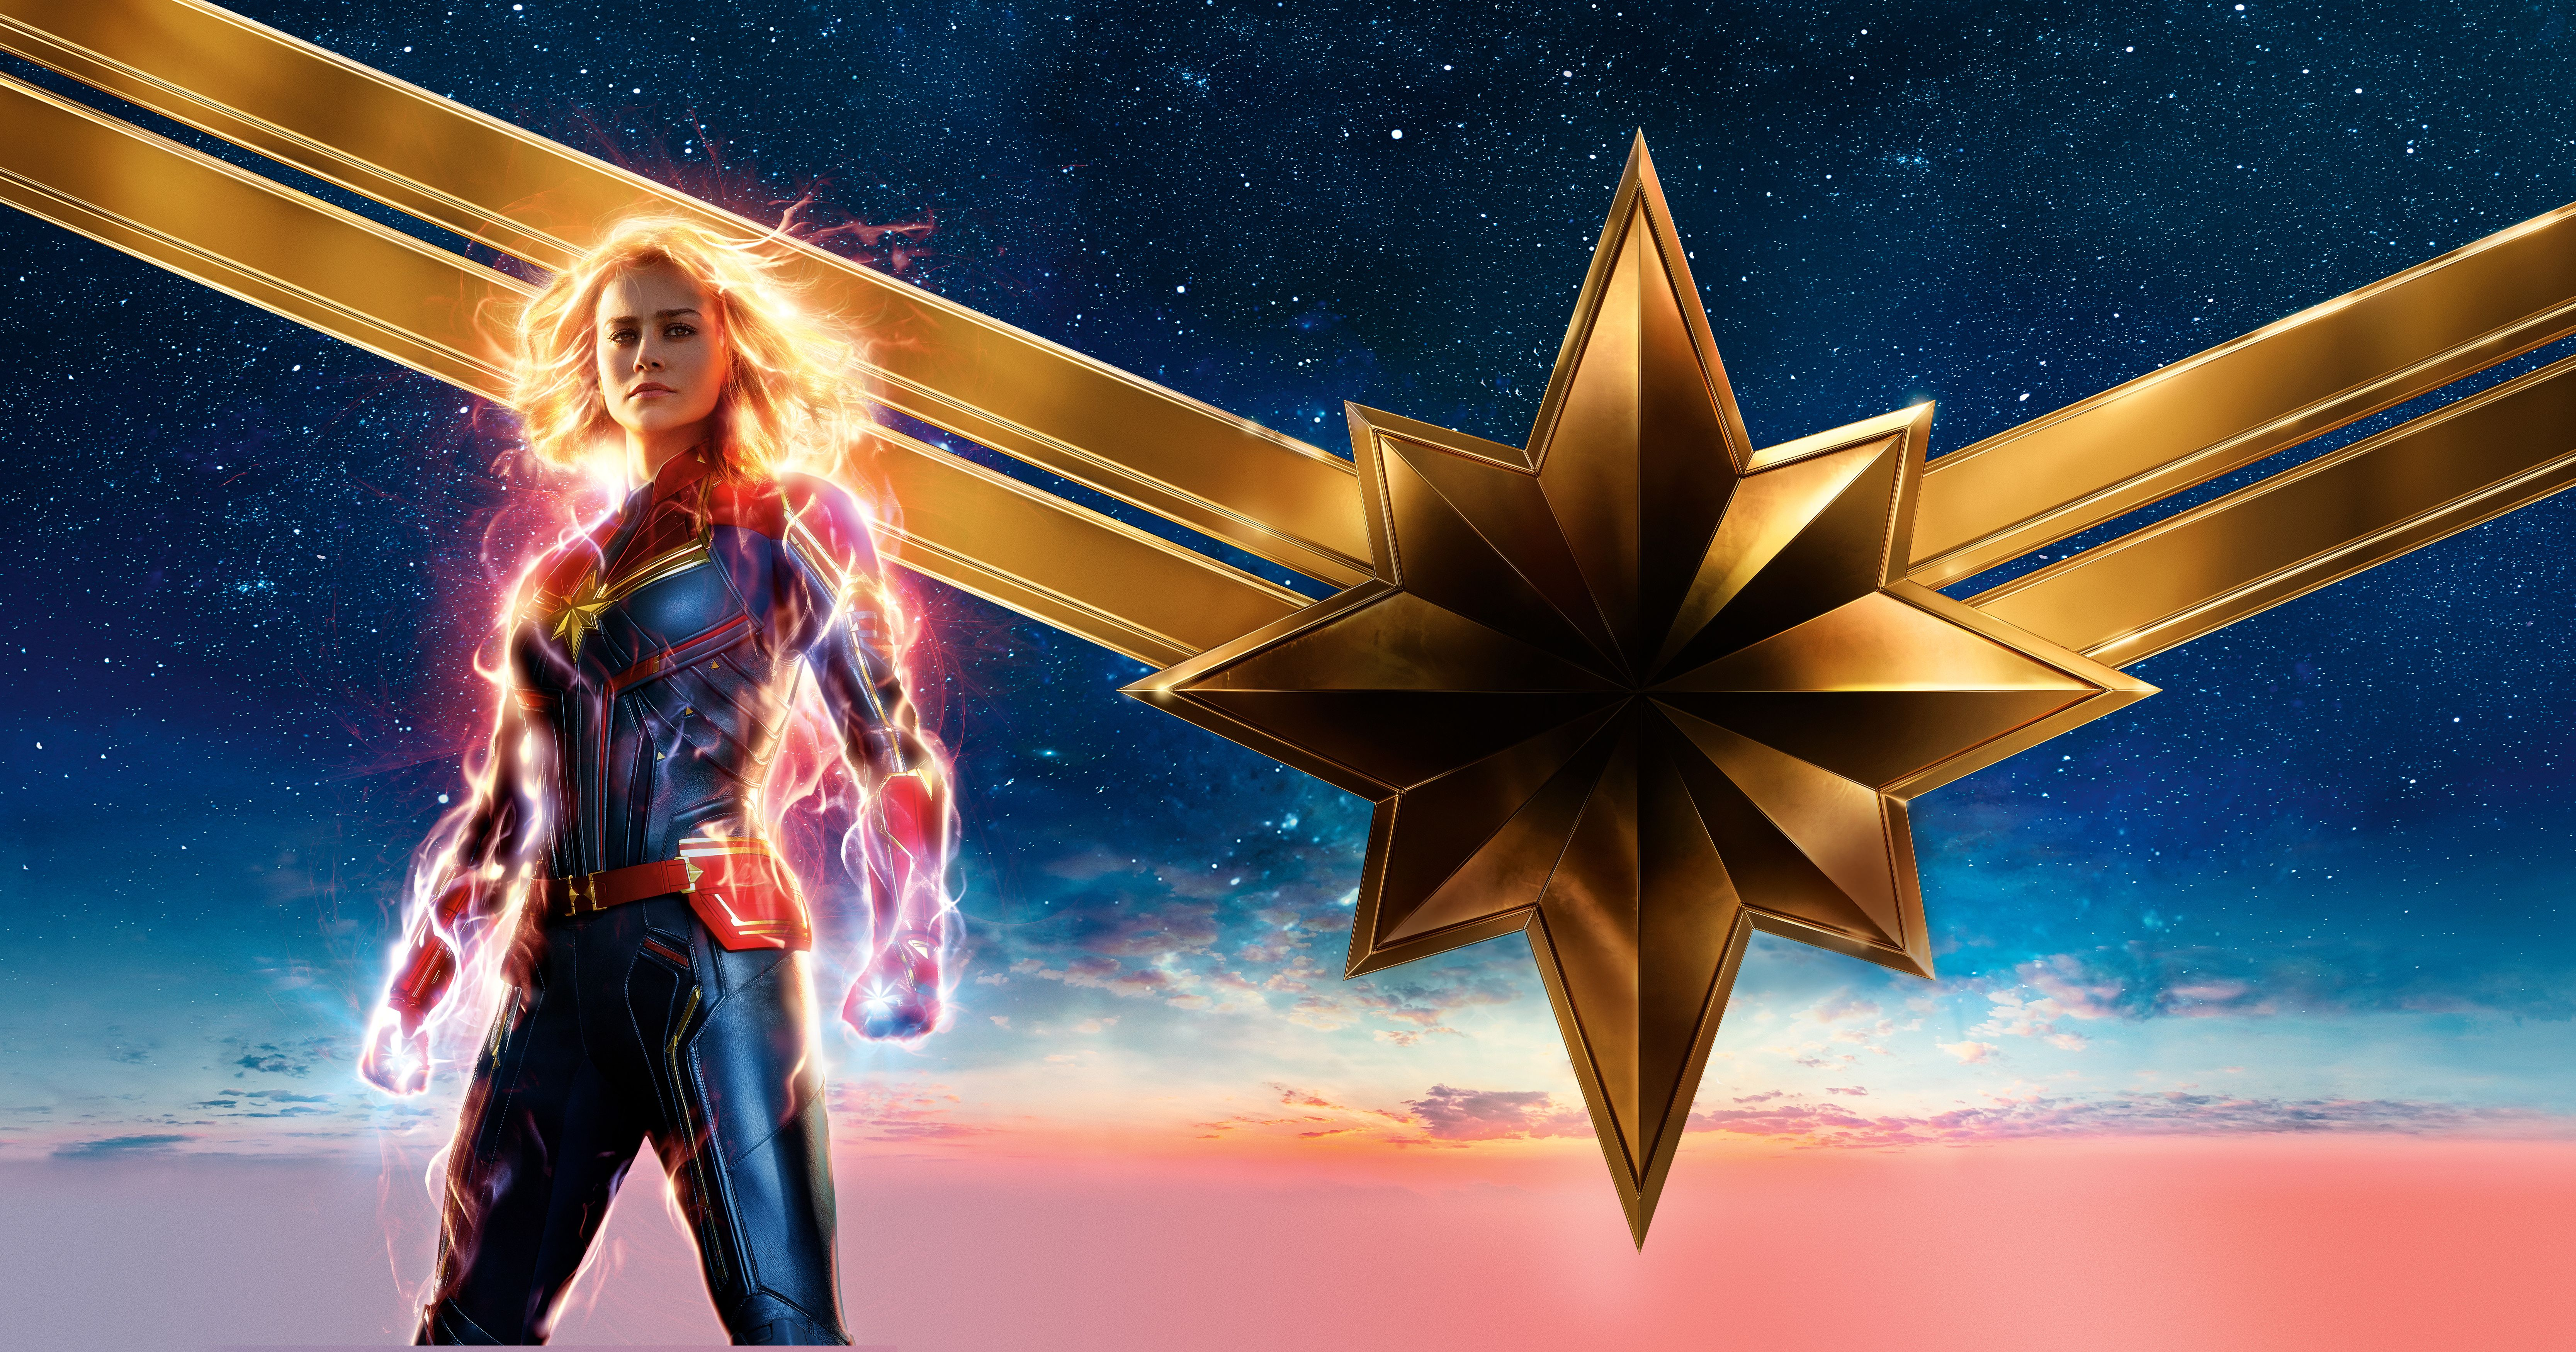 6668x3500 Wallpaper Captain Marvel, Marvel Comics, 2019, 4K, 5K ...